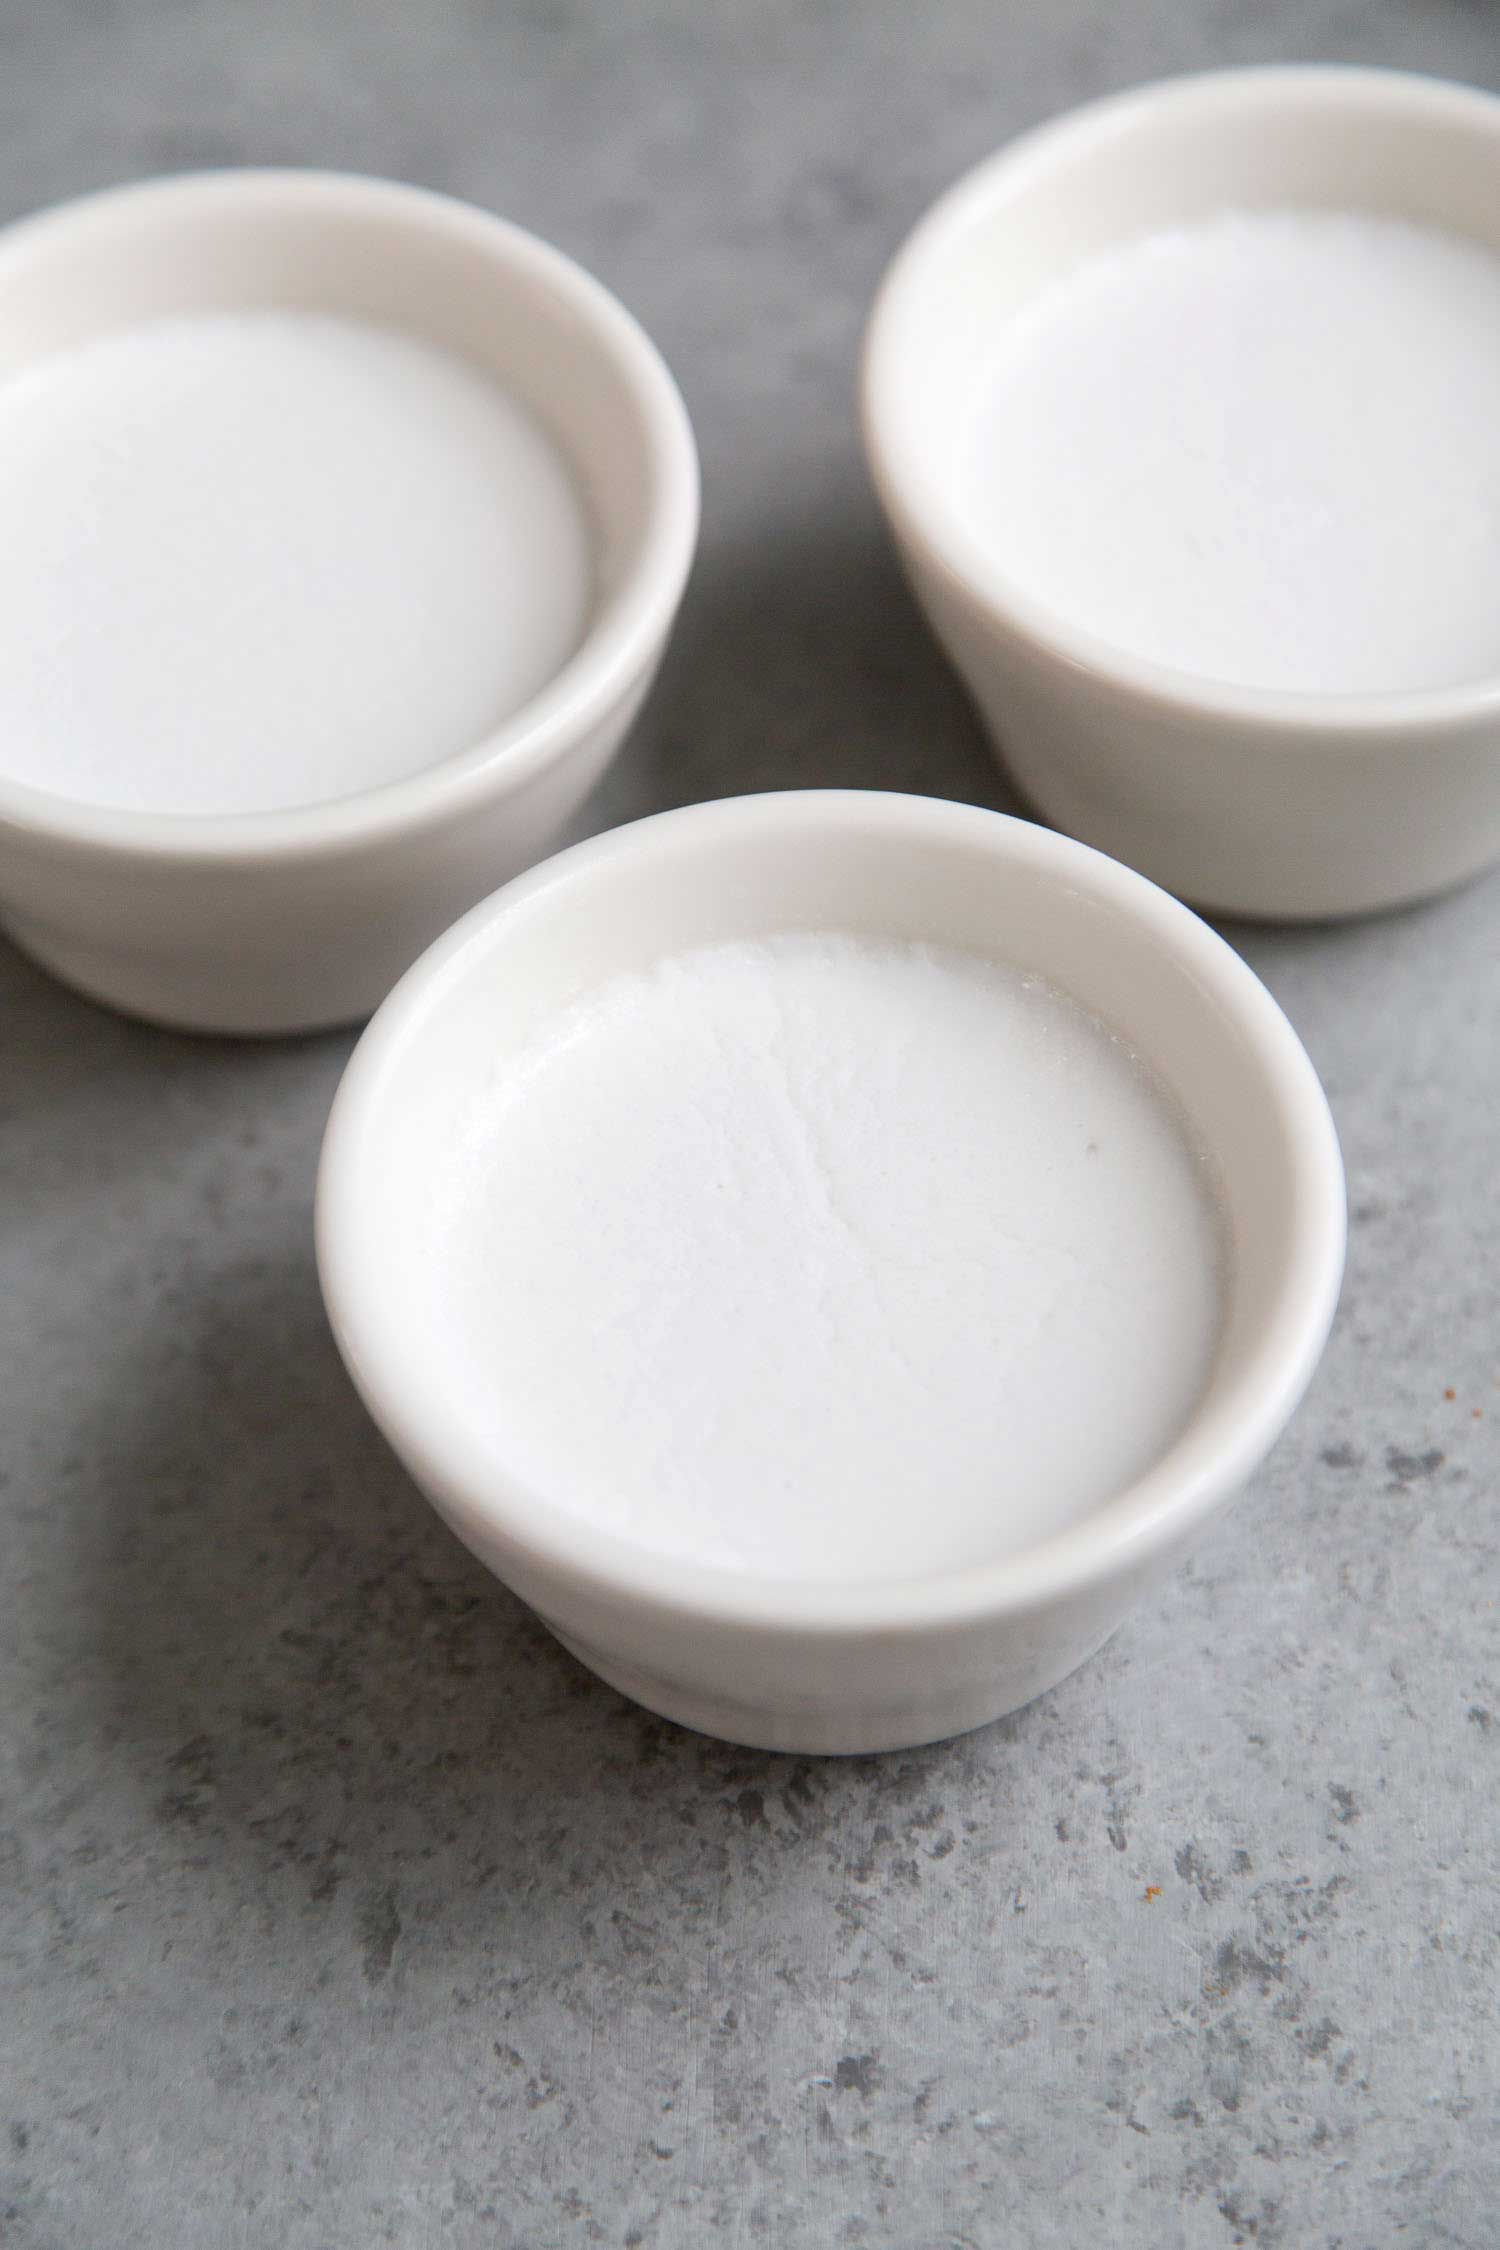 Coconut Panna Cotta set in small ramekin molds